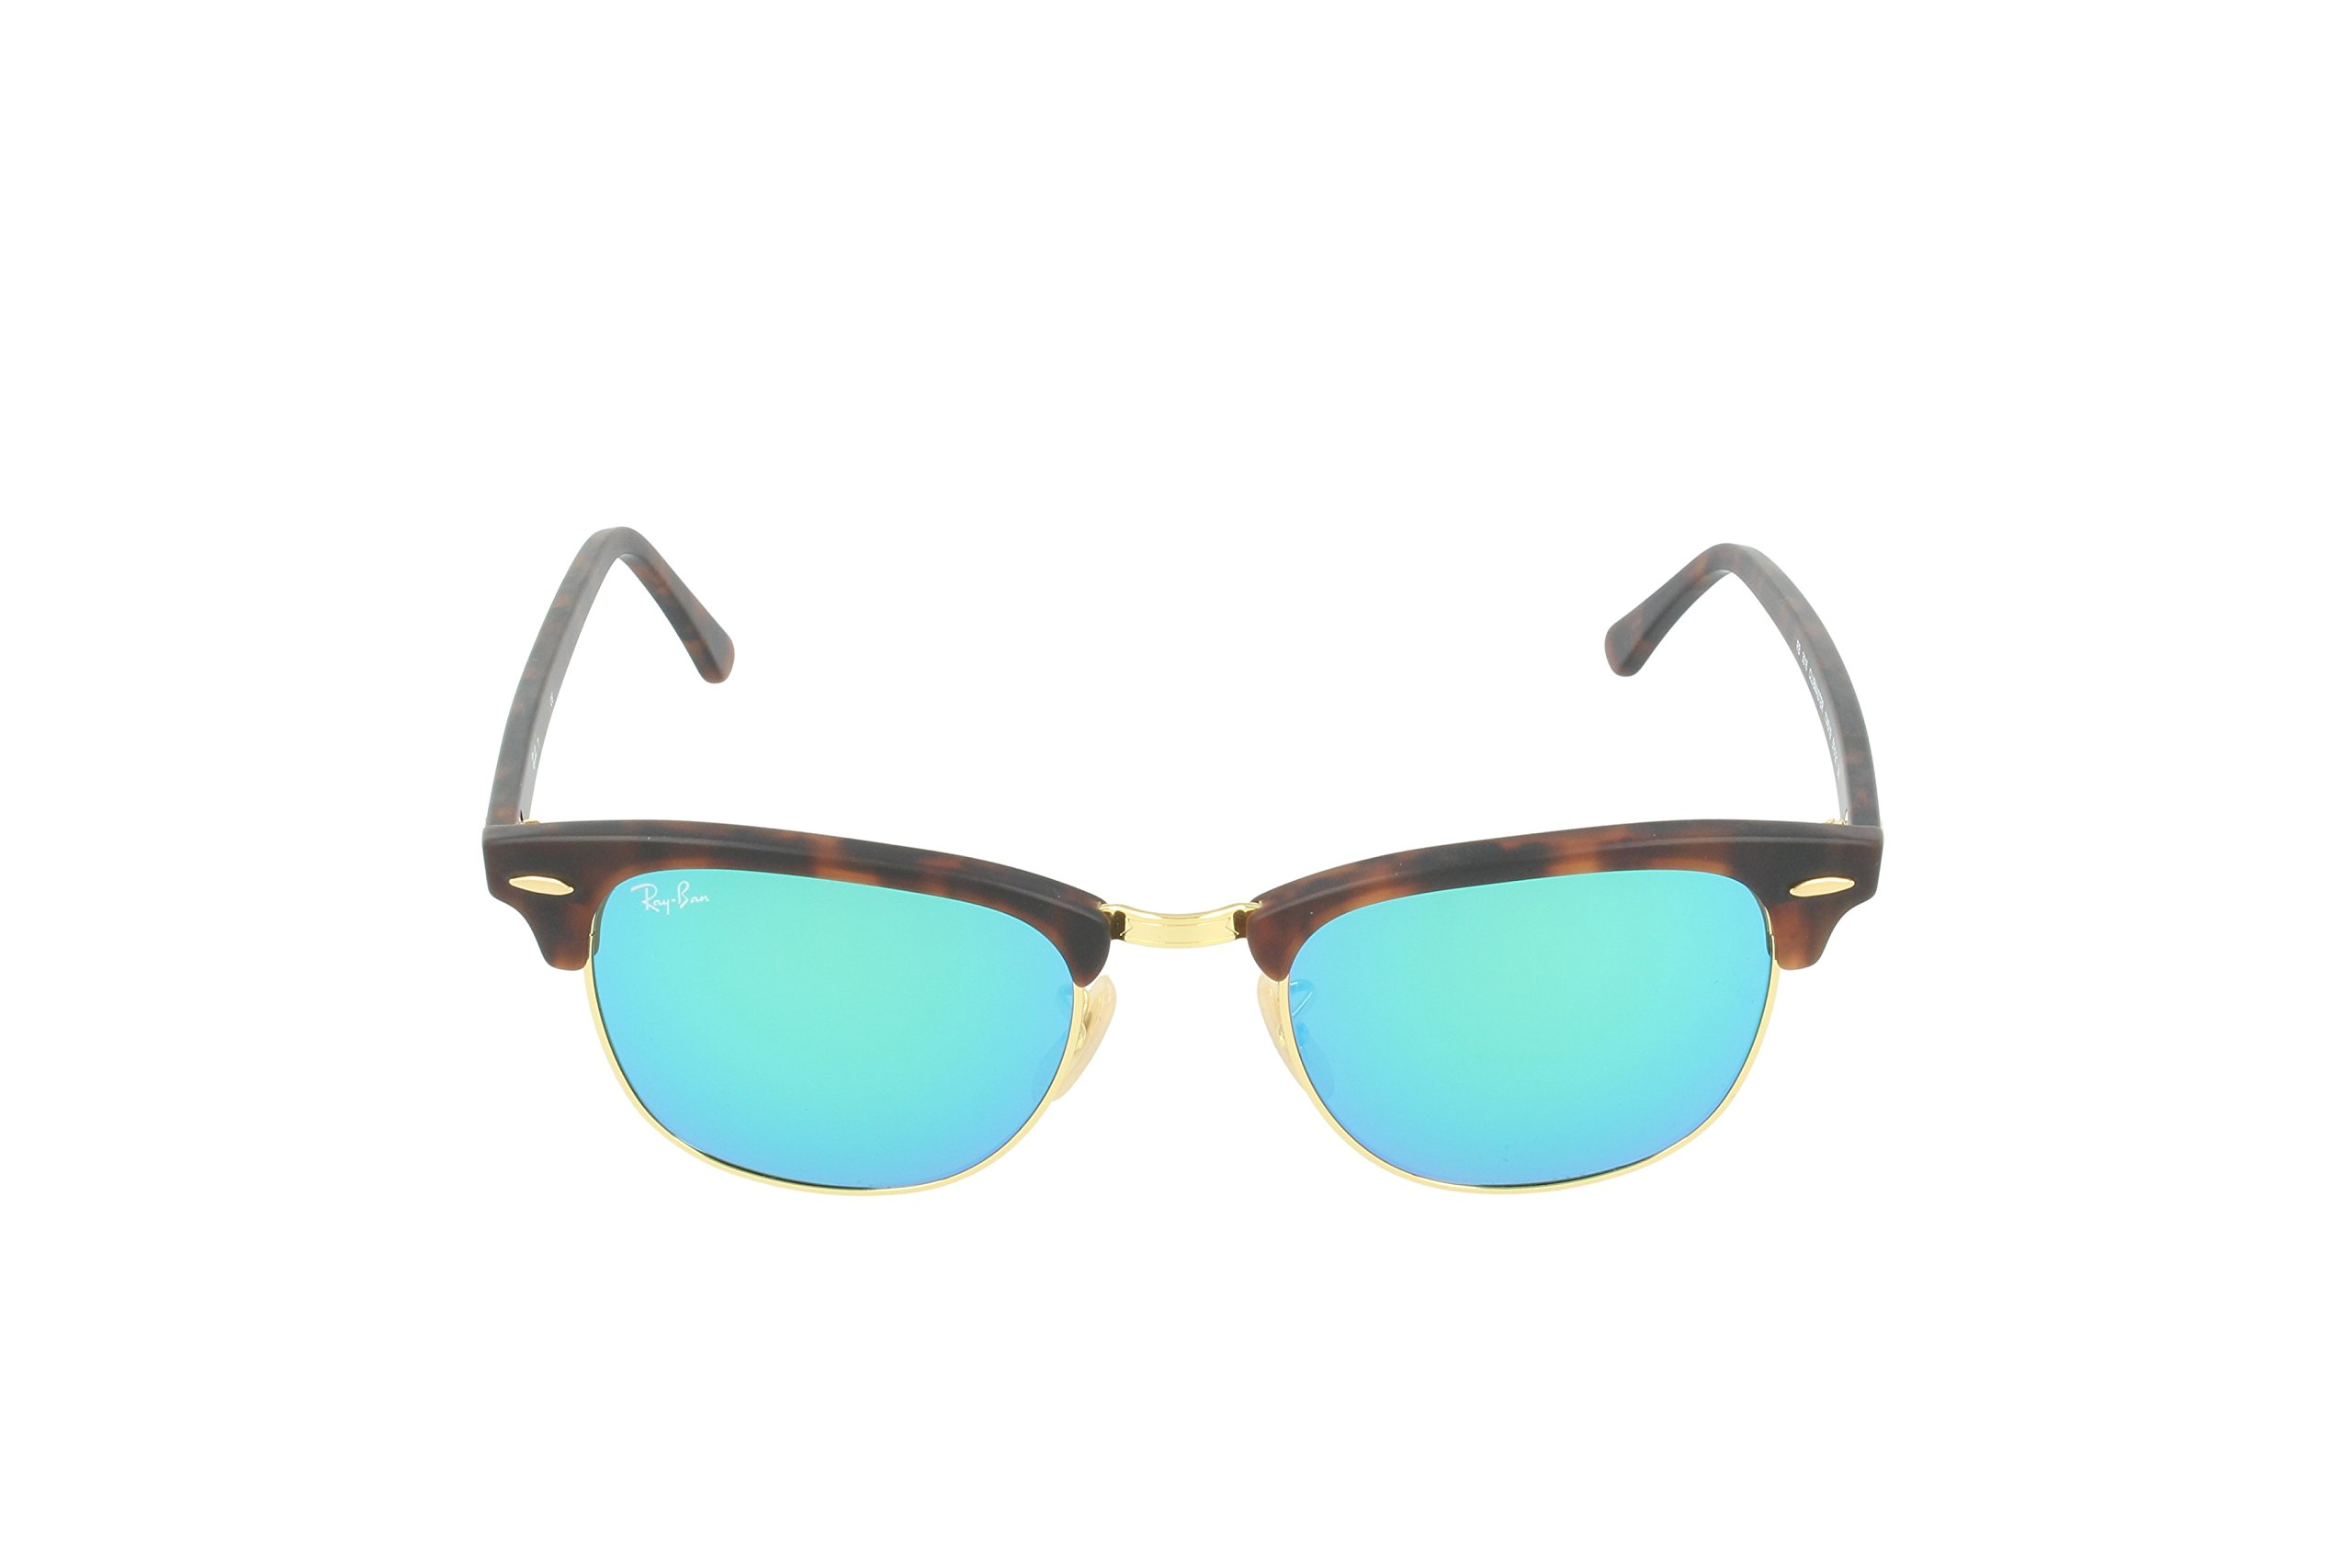 Ray-Ban CLUBMASTER - SAND HAVANA/GOLD Frame GREY MIRROR GREEN Lenses 51mm Non-Polarized by Ray-Ban (Image #2)